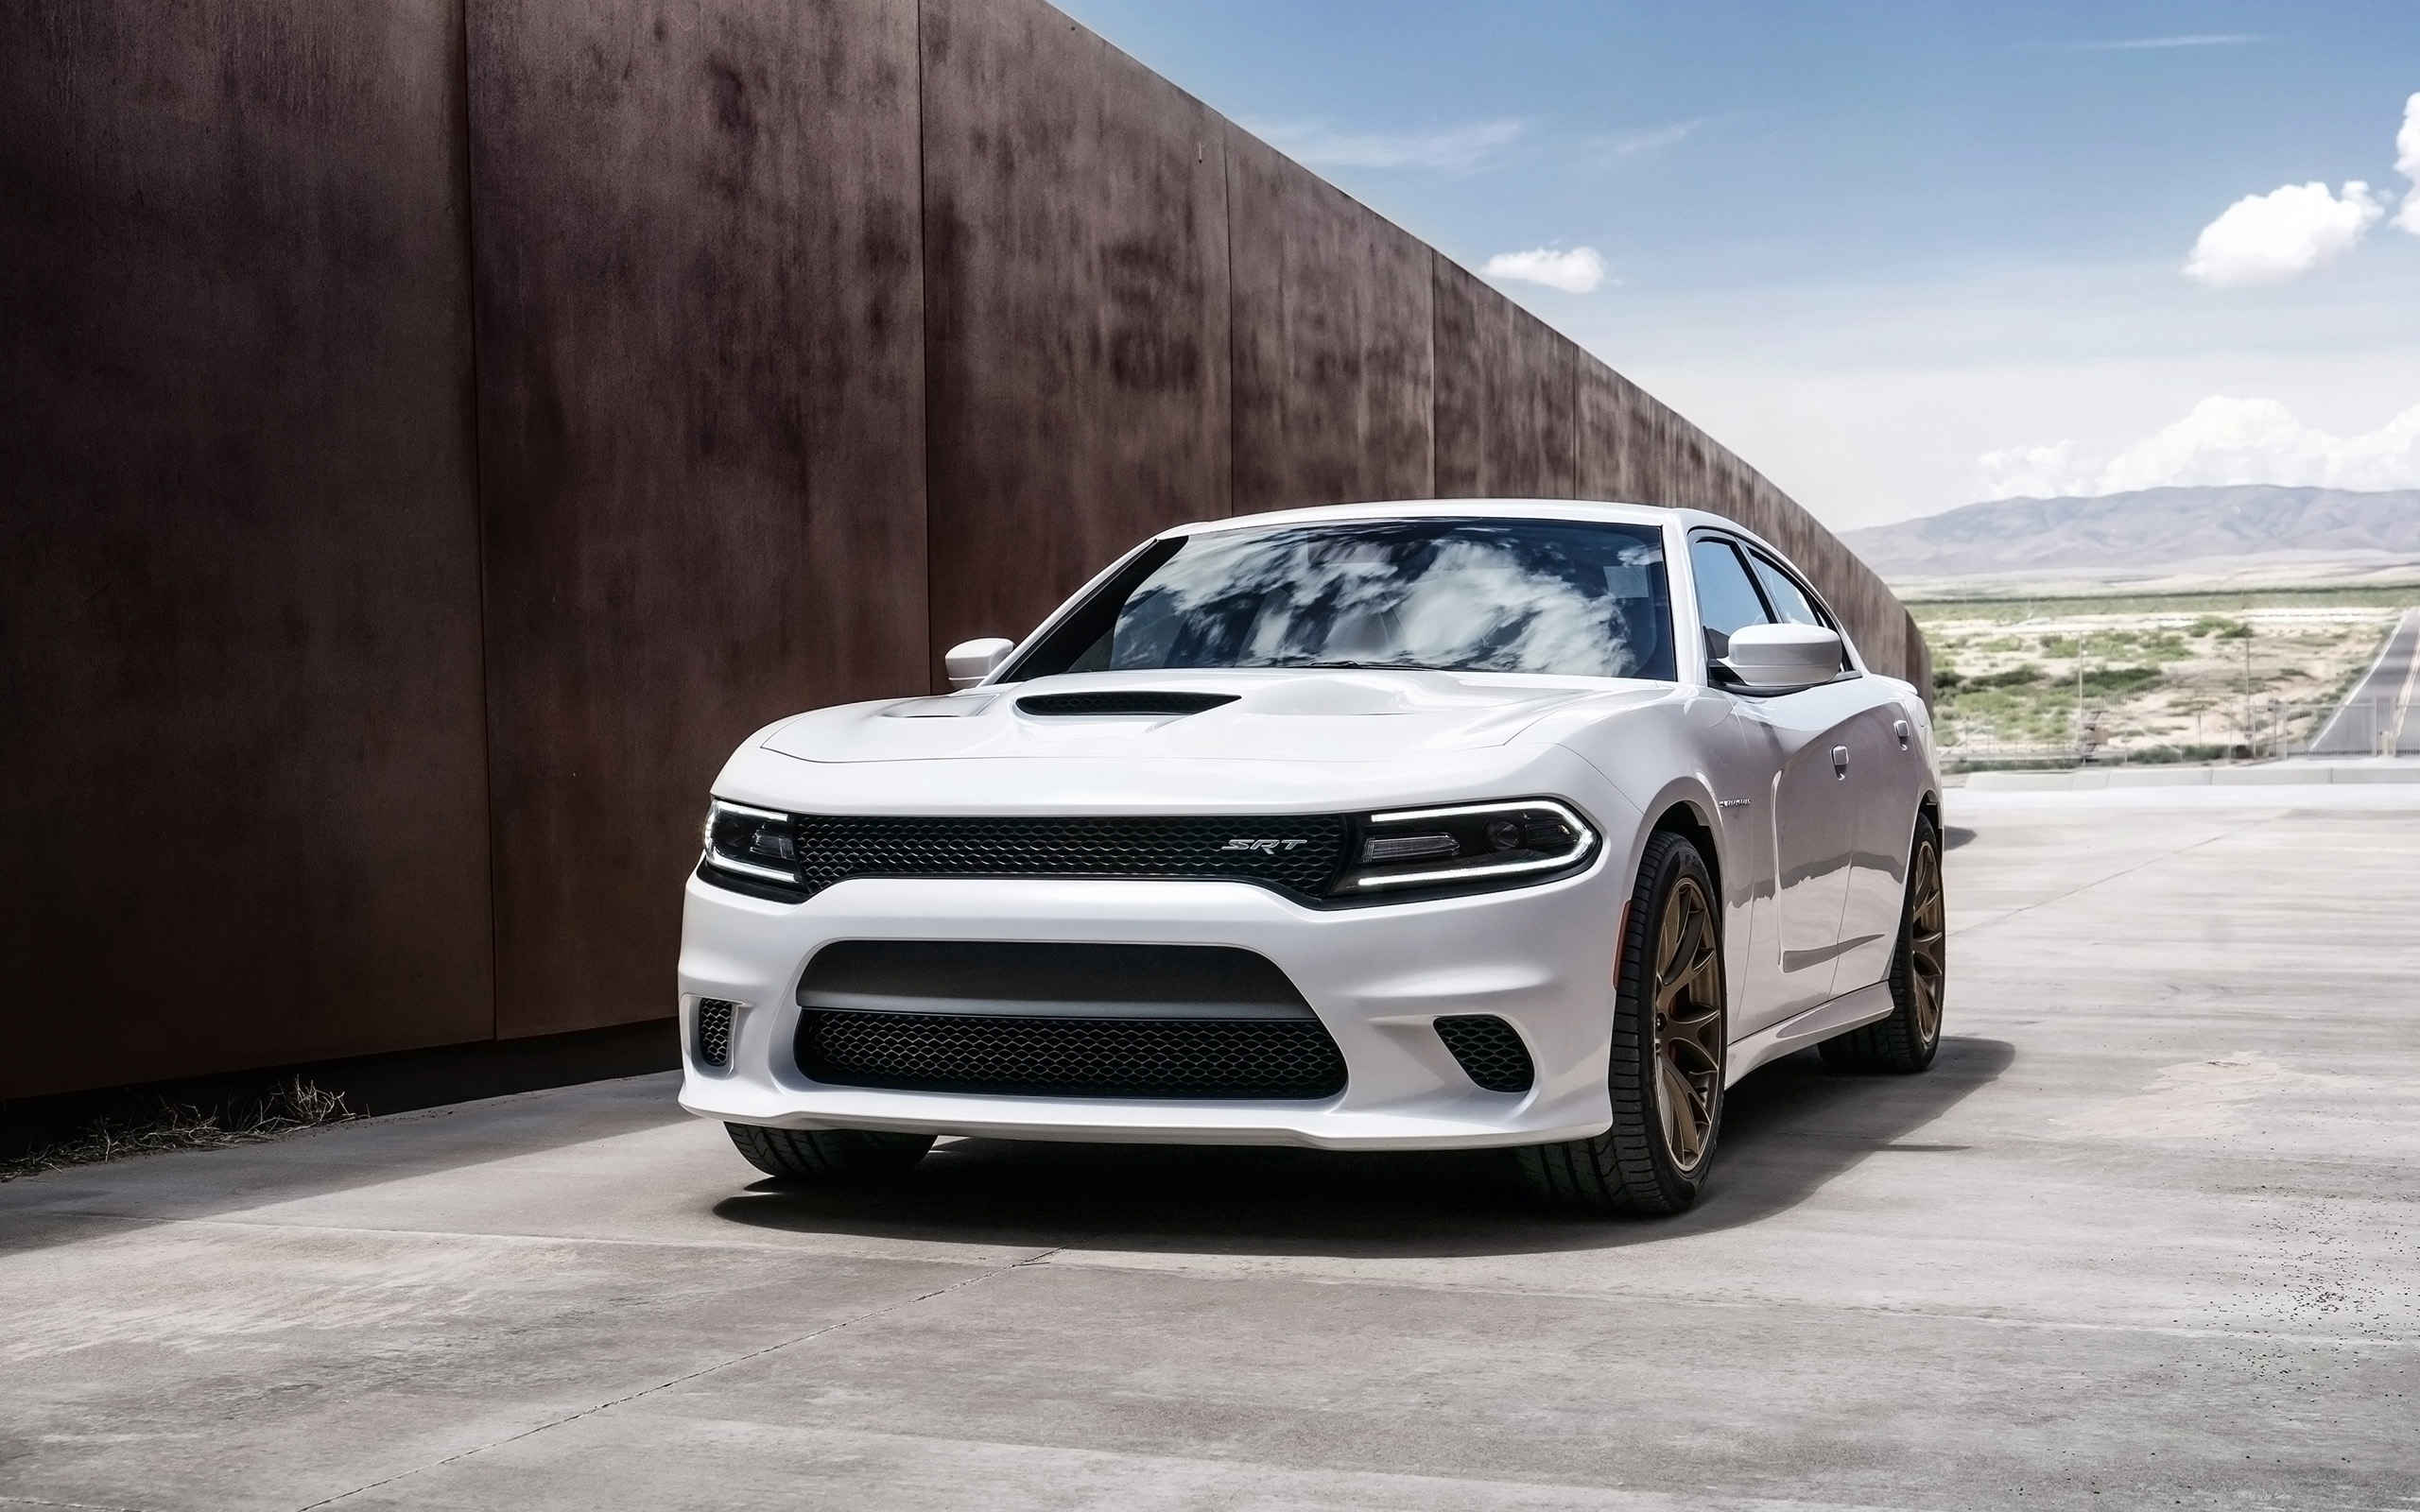 2015 dodge charger srt hellcat 3 wallpaper hd car wallpapers id 4733. Black Bedroom Furniture Sets. Home Design Ideas